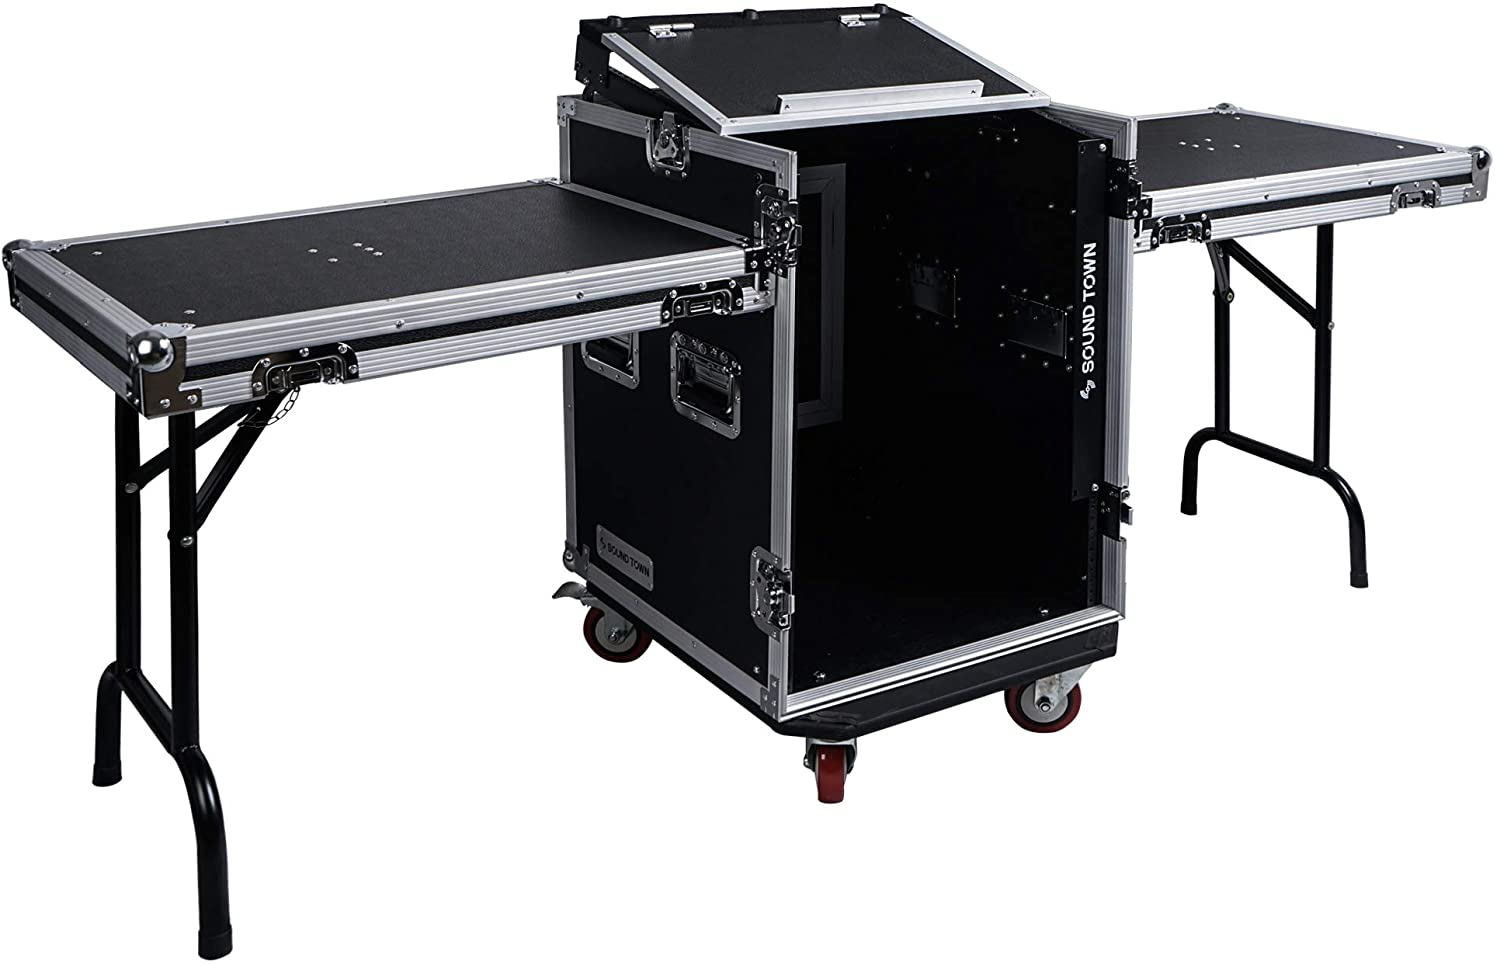 Sound Town 14U PA DJ Rack/Road ATA Case with 11U Slant Mixer Top, 20'' Rackable Depth, 2 DJ Work Tables and Casters, 14-Space Size (STMR-14UWT2)